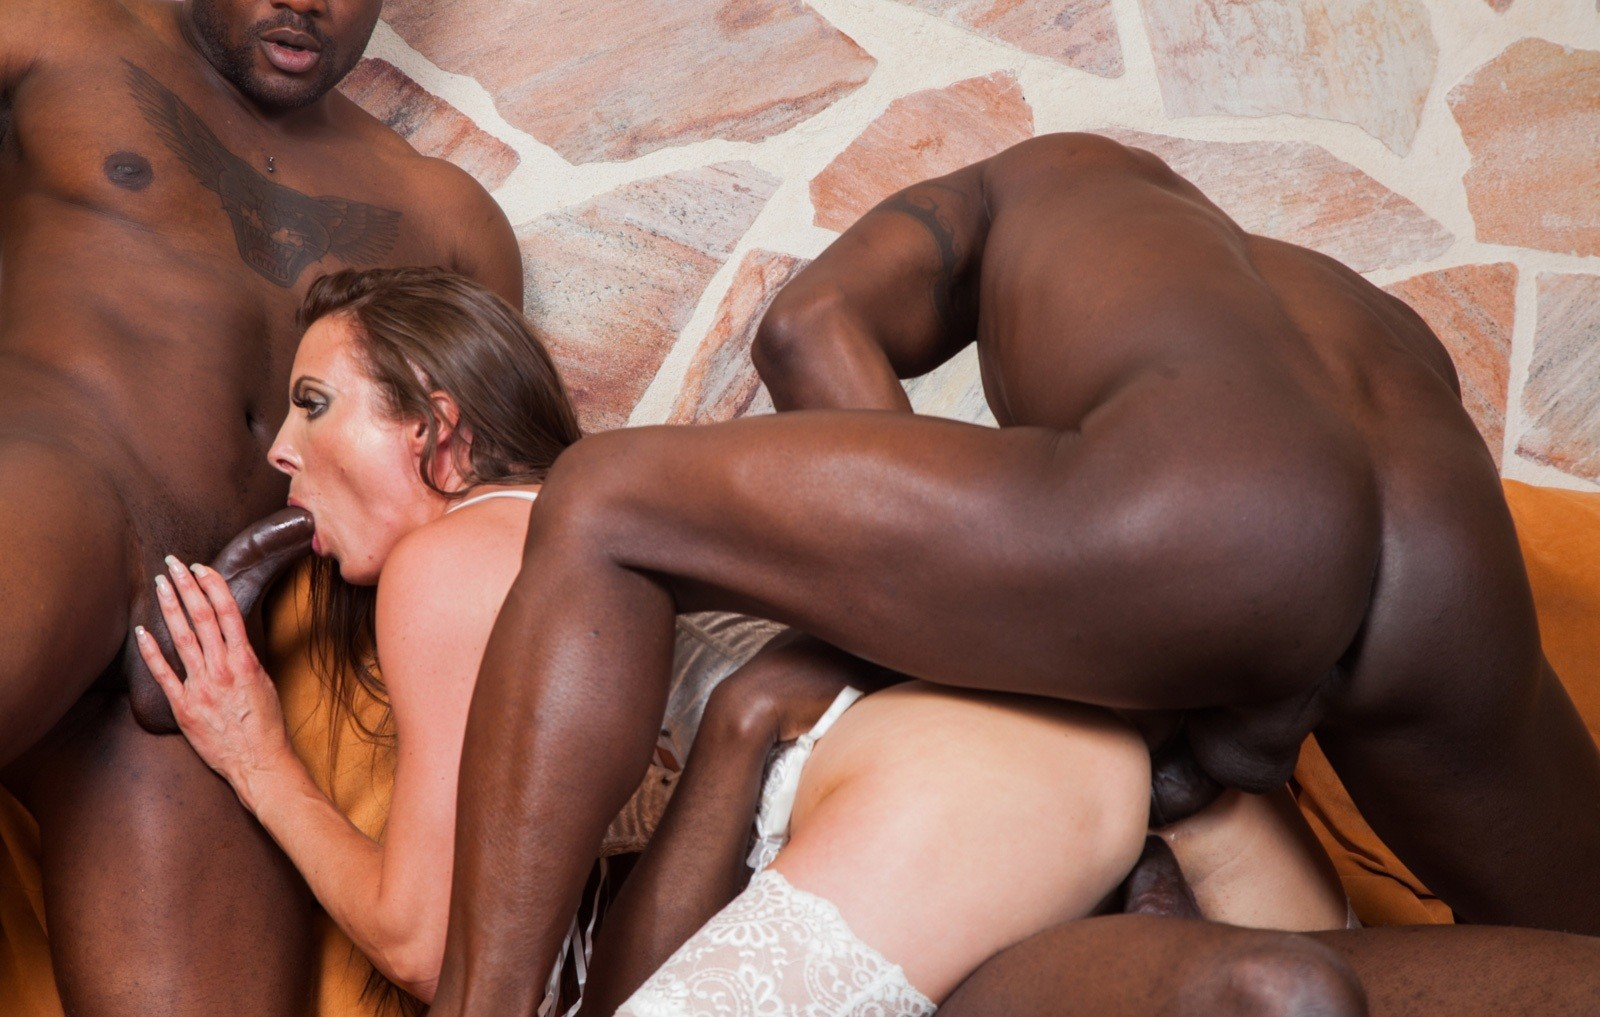 coeds-partying-top-interracial-sex